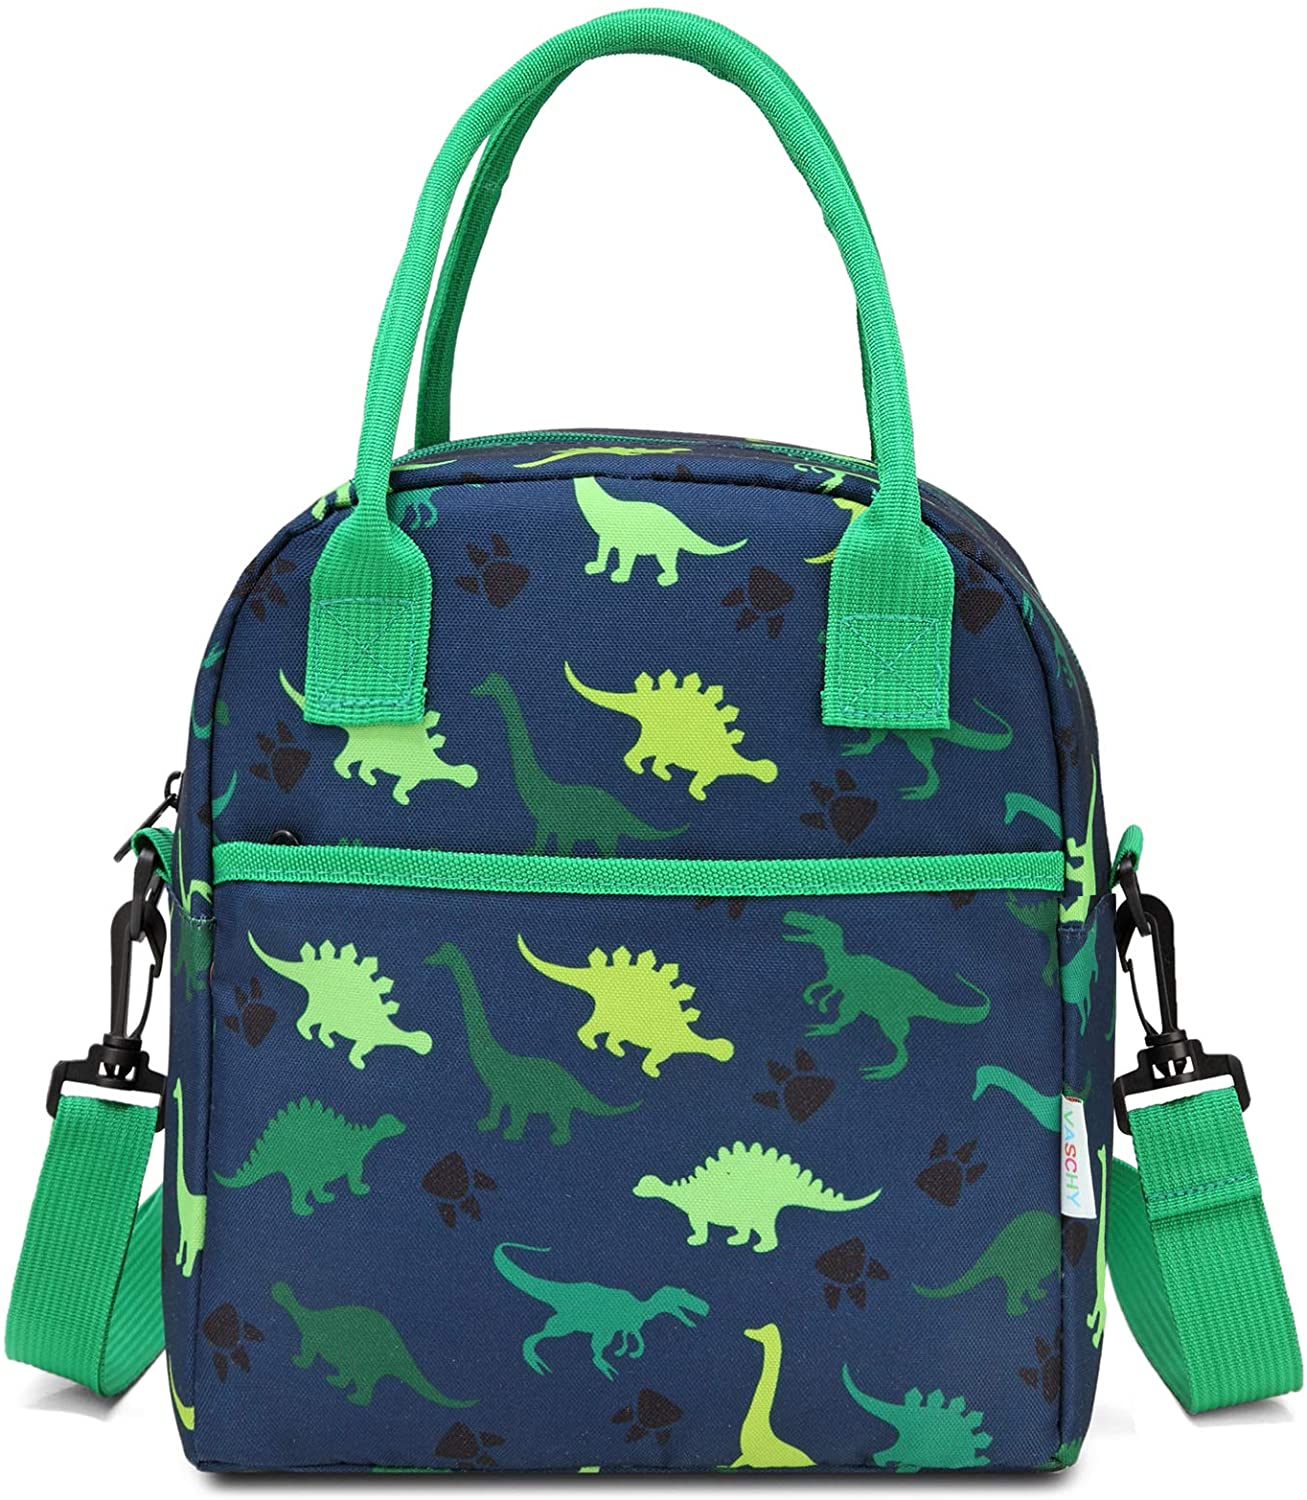 Lunch Box Bag for Kids,VASCHY InsulatedLightweight Lunch Box Tote for Toddler Boys and Girls School Daycare Kindergarten Dinosaur